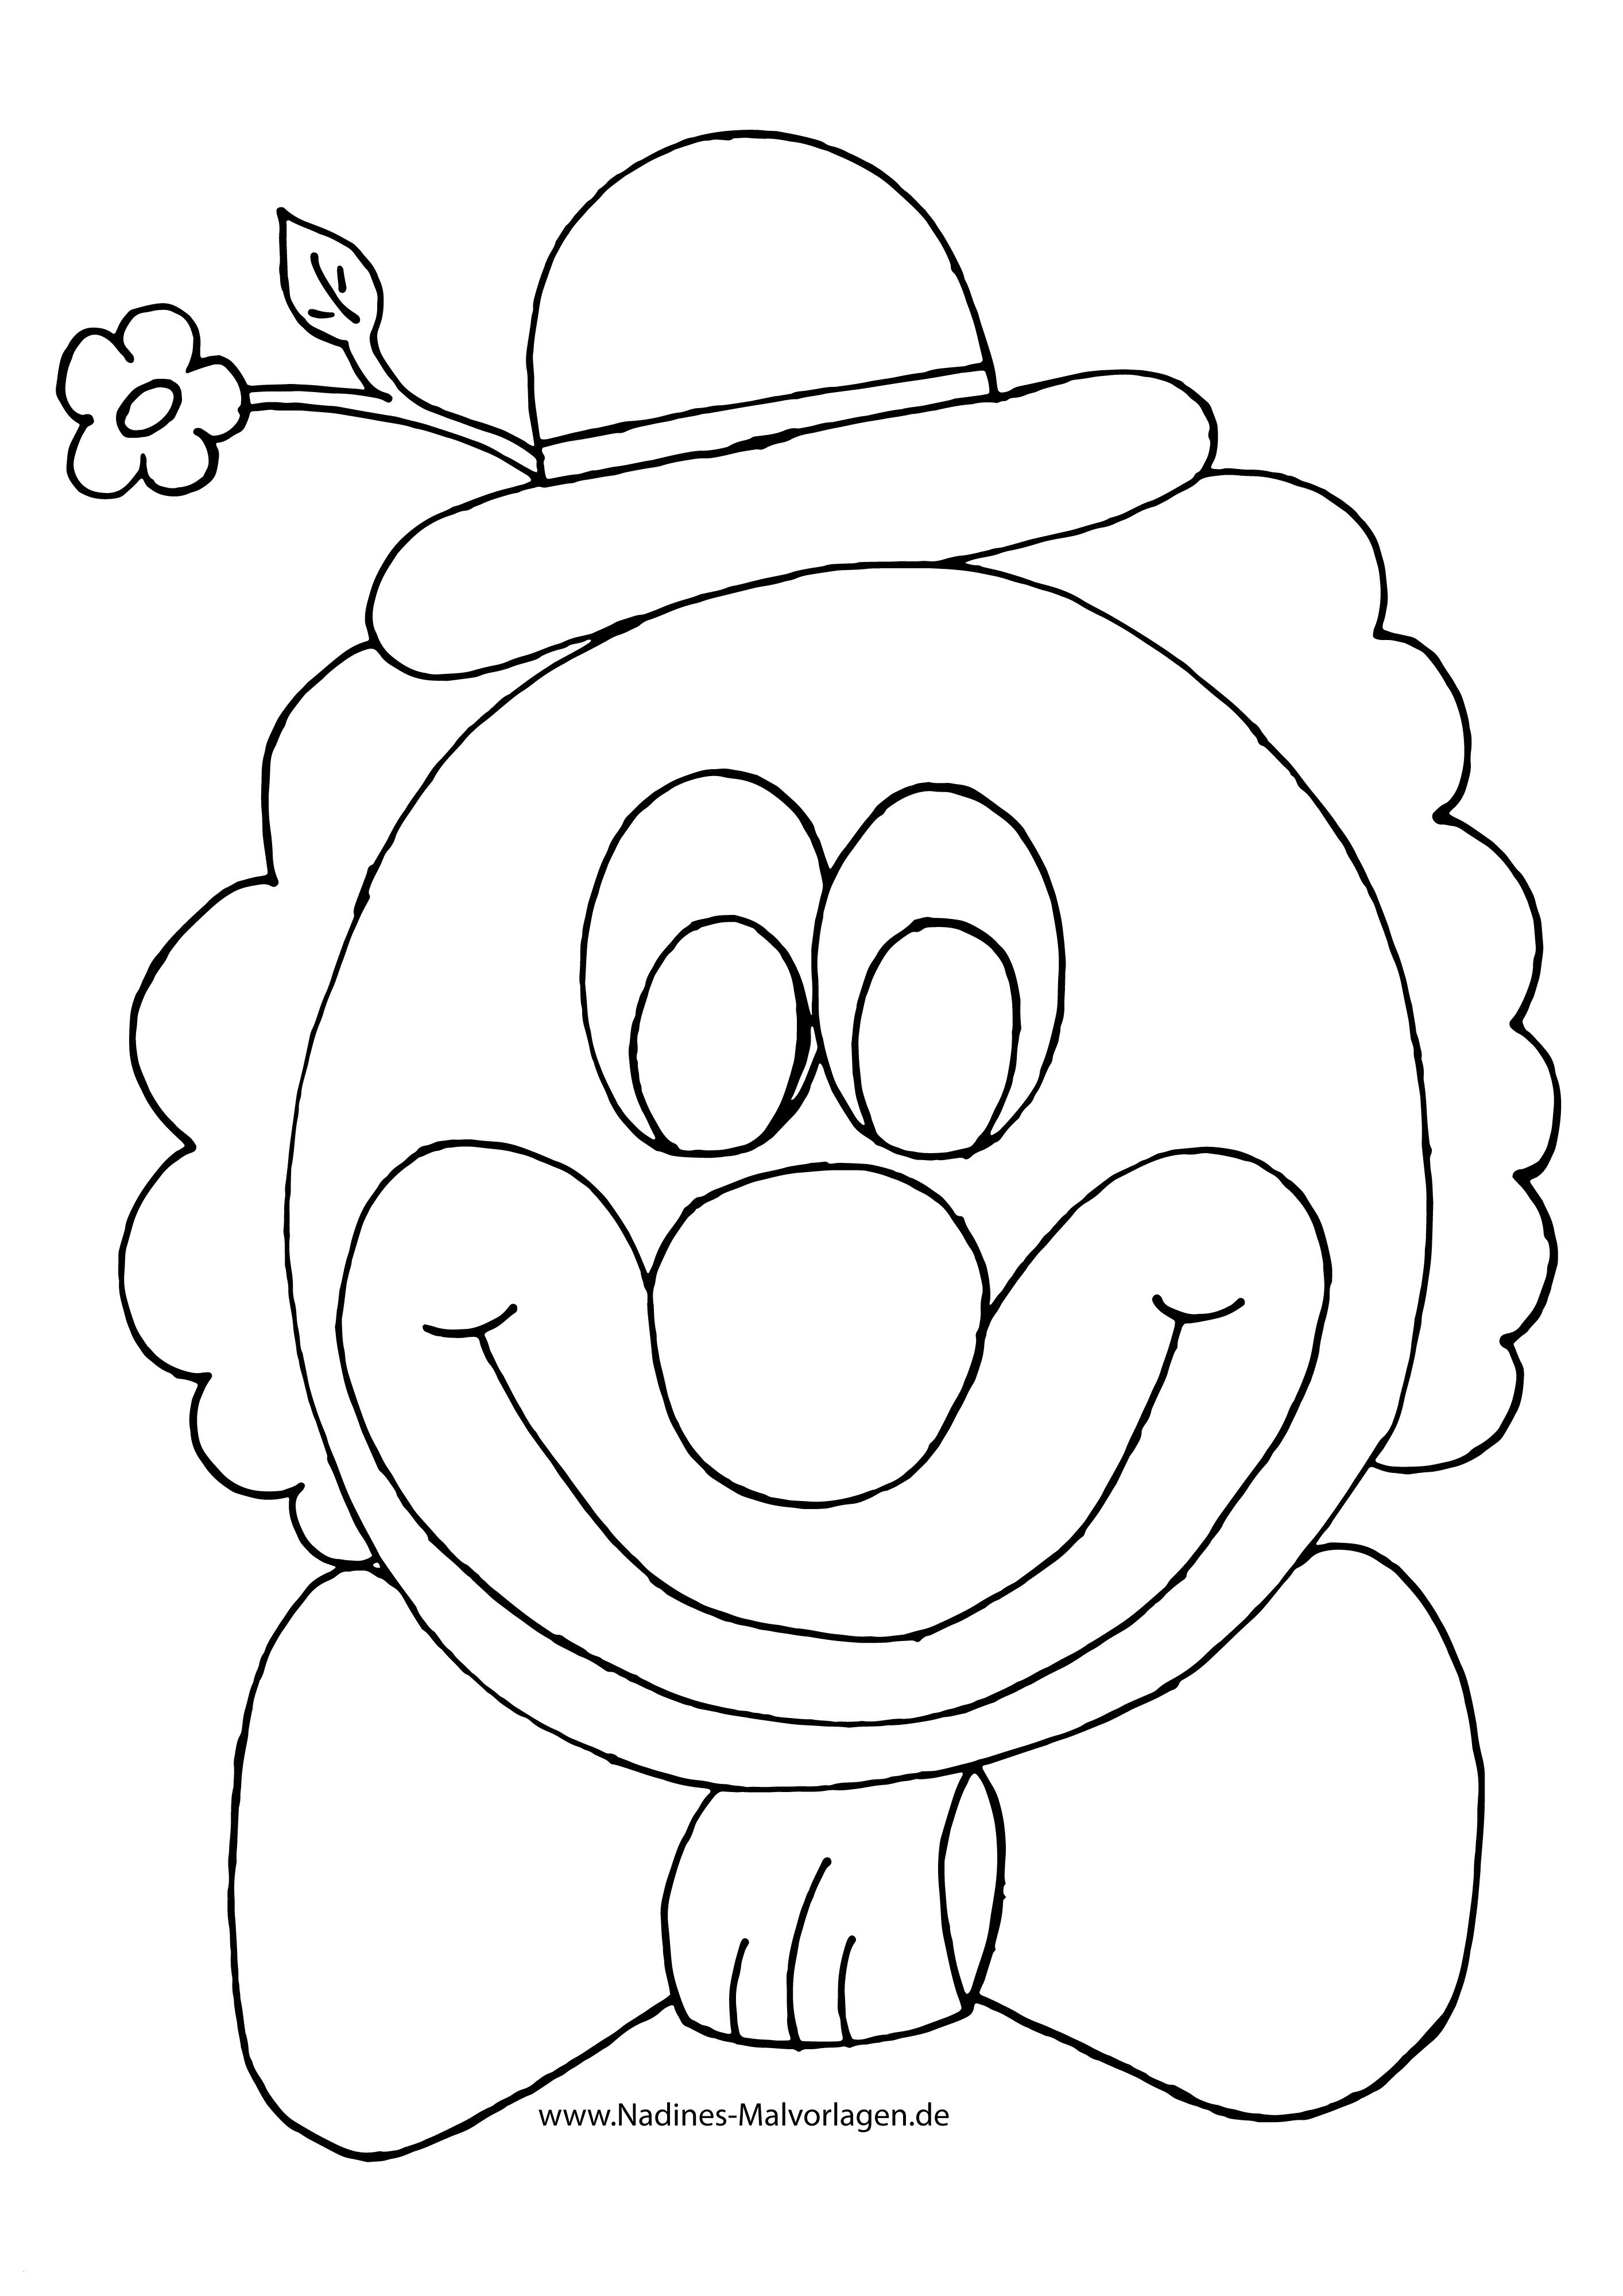 linkedin lego coloring pages - photo#27